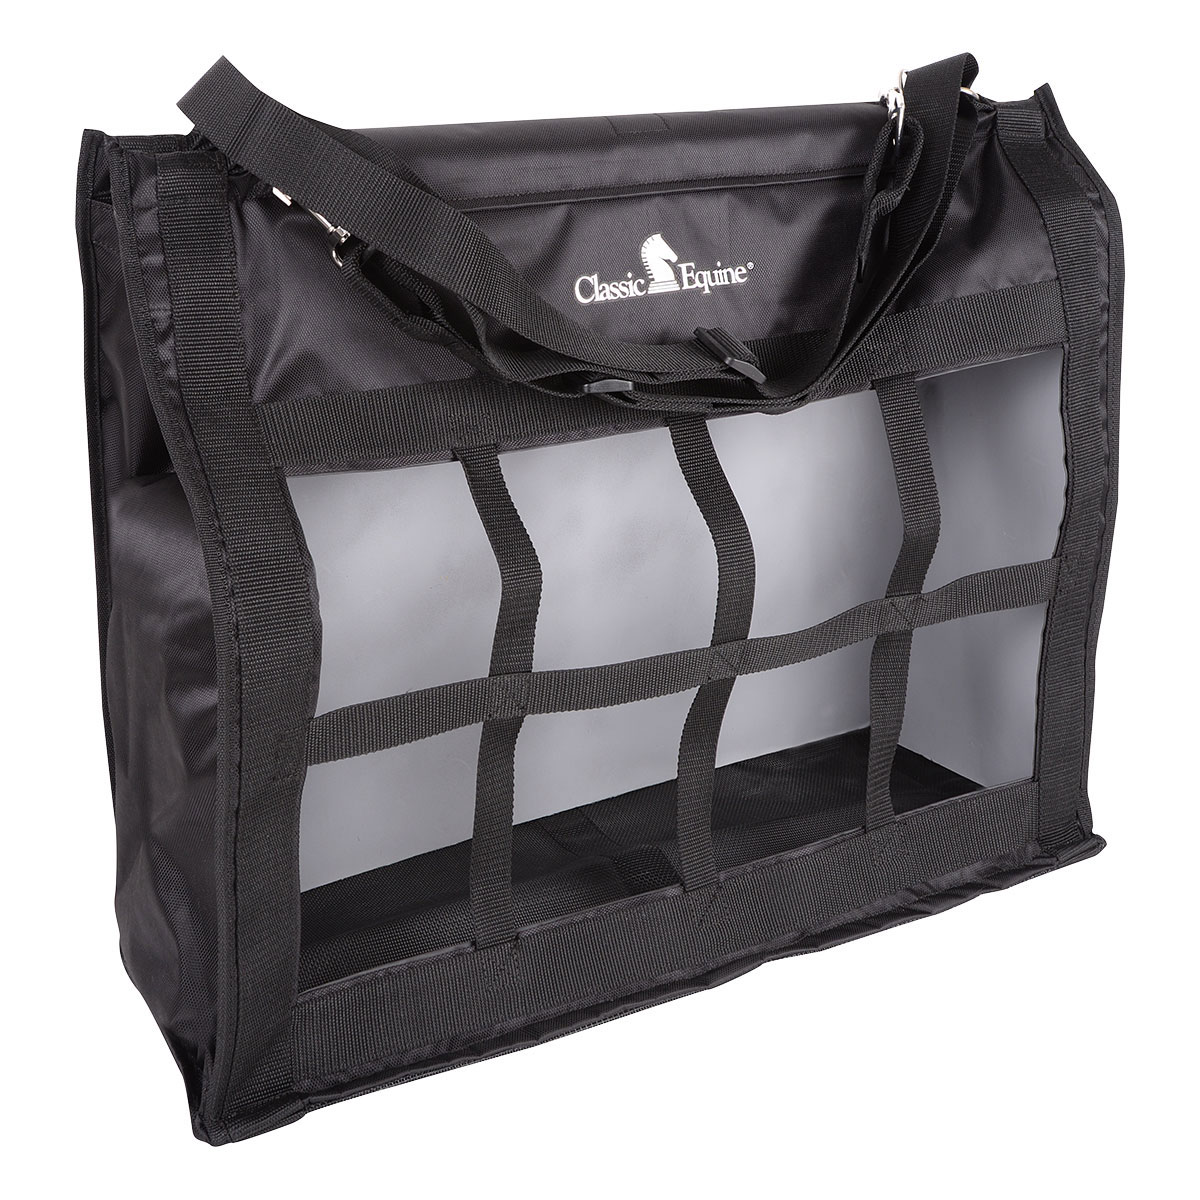 8e6d1caf0fc tap image to zoom. ‹ 1 / 1 ›. Our Price: $36.95. Deluxe Top Load Hay Bag ...